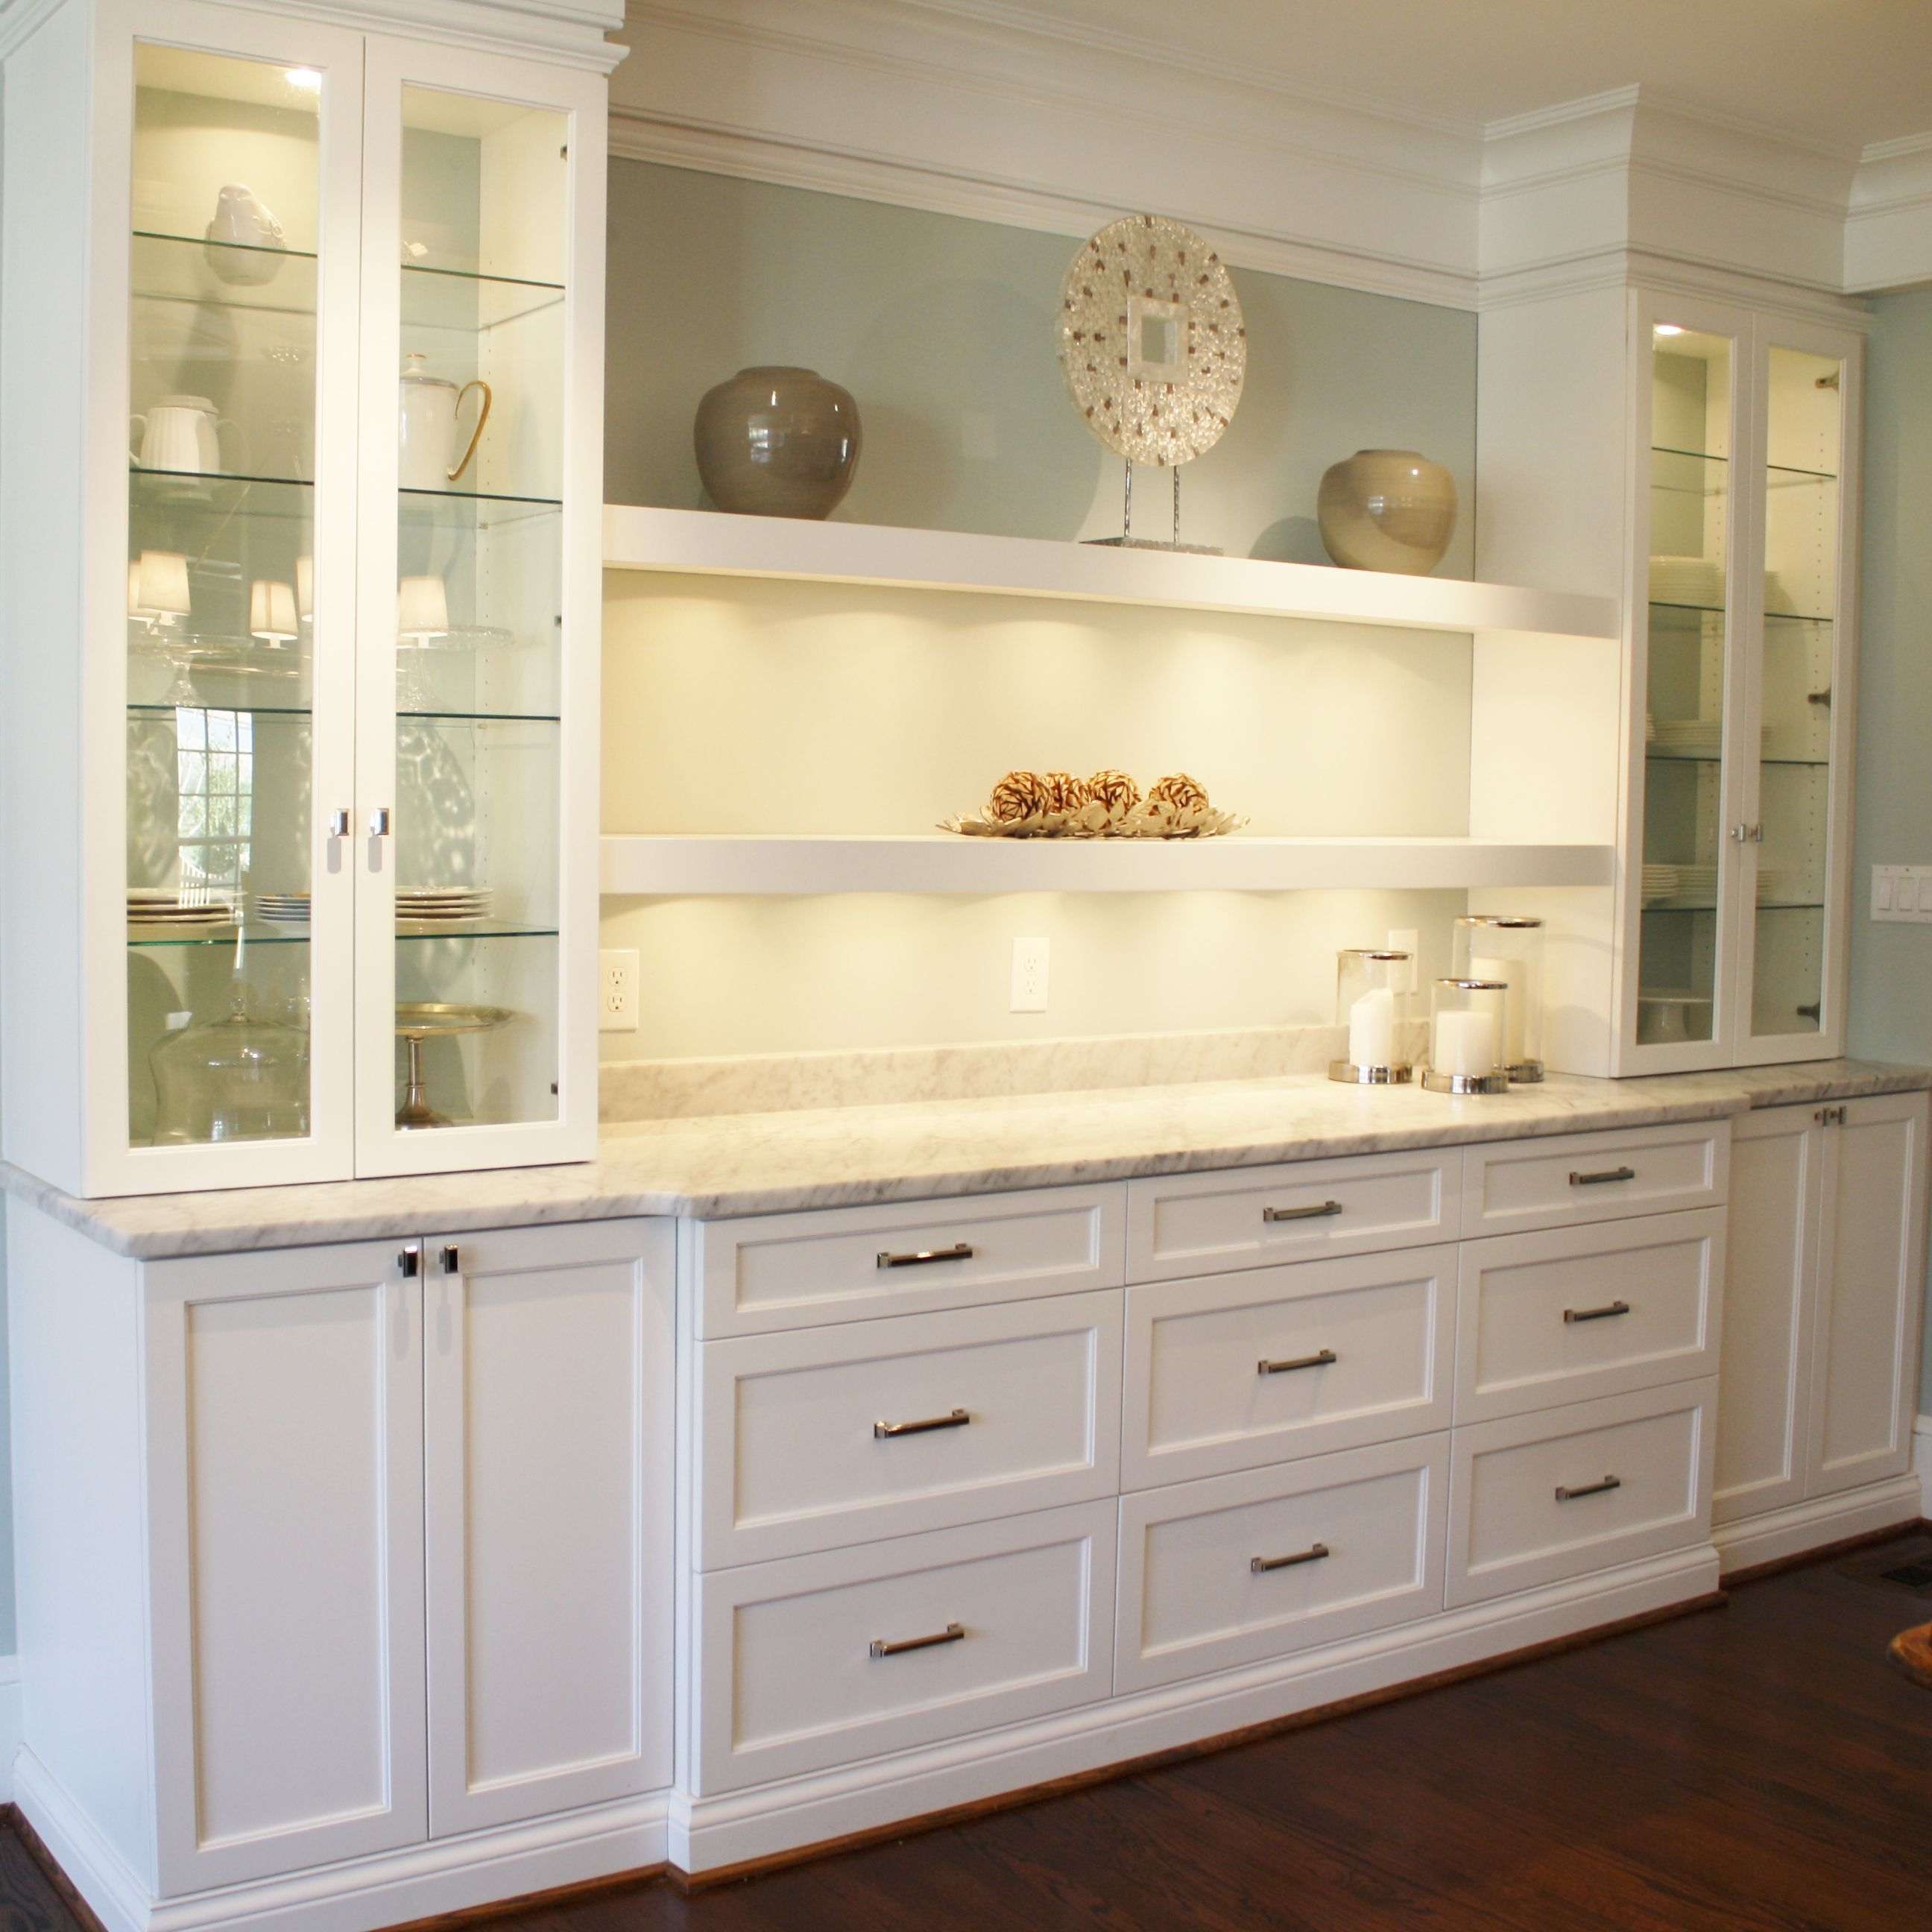 Dining Idea Room Storage: #kitchen #breakfast #bar #buffet Gorgeous Custom Breakfast